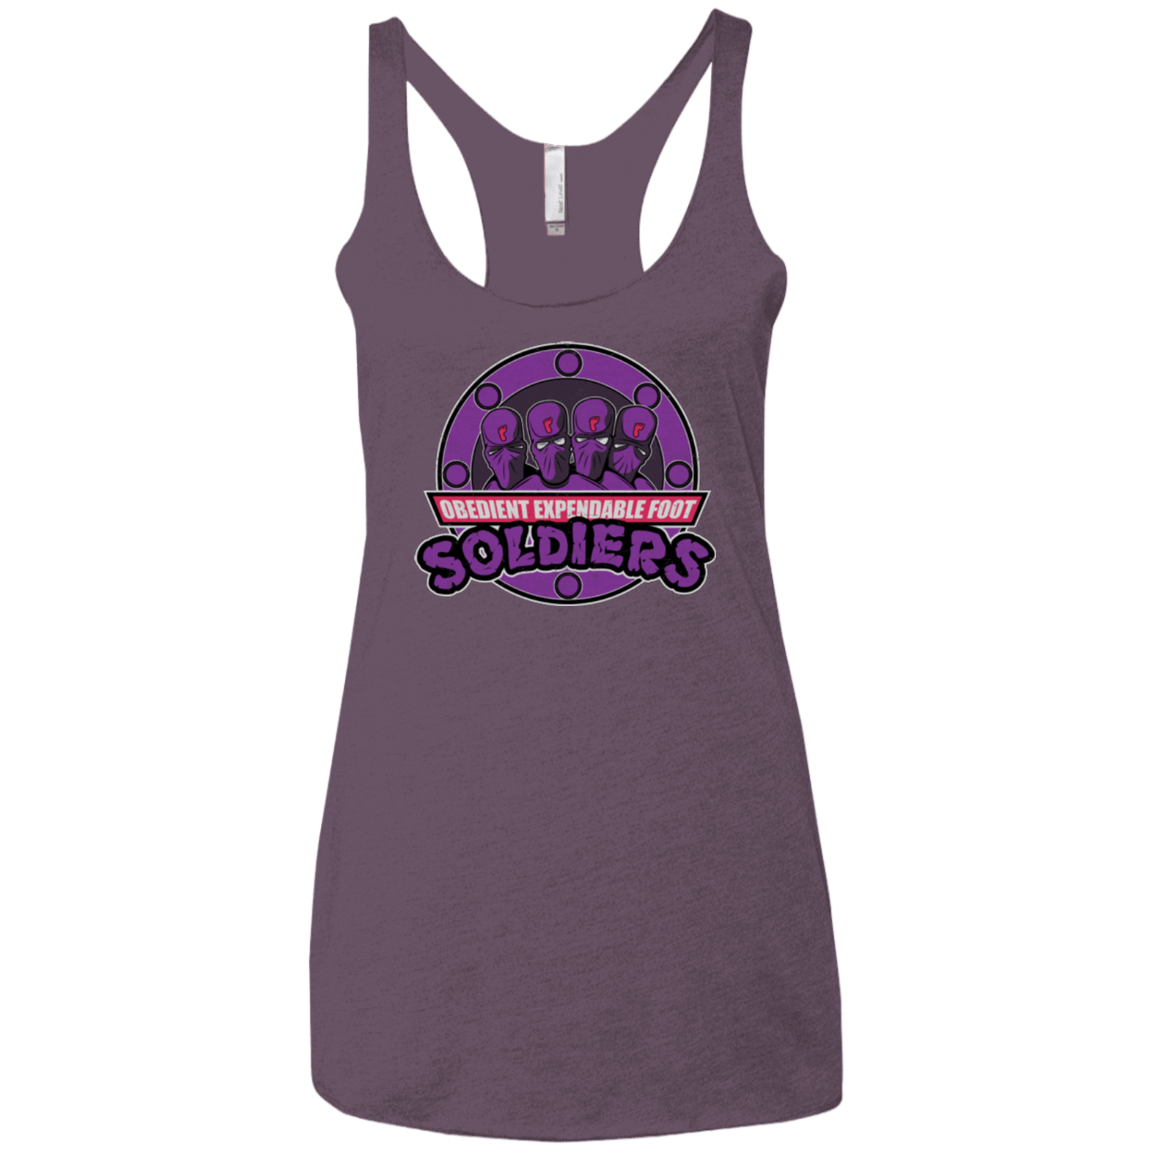 T-Shirts Vintage Purple / X-Small OBEDIENT EXPENDABLE FOOT SOLDIERS Women's Triblend Racerback Tank